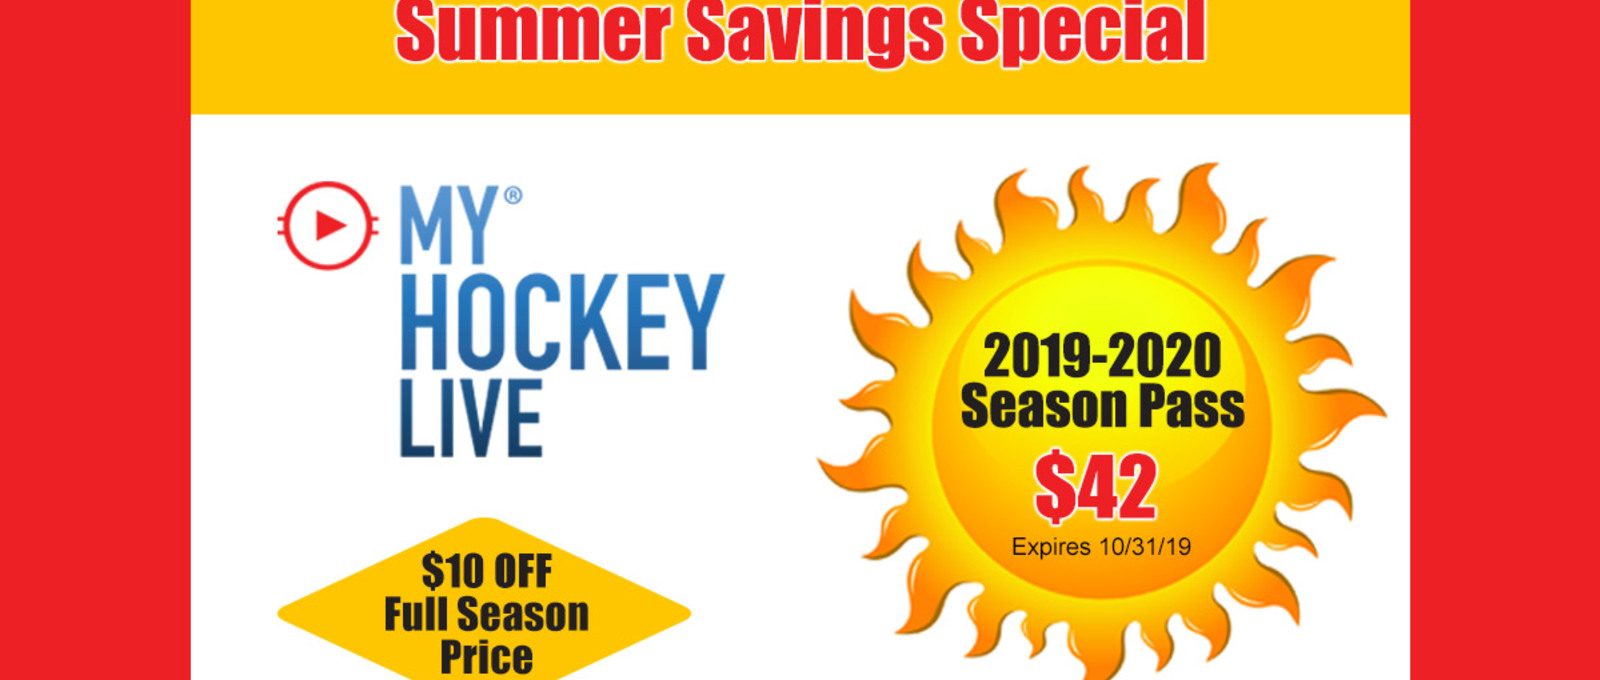 2019-2020 Subscription Summer Savings!!